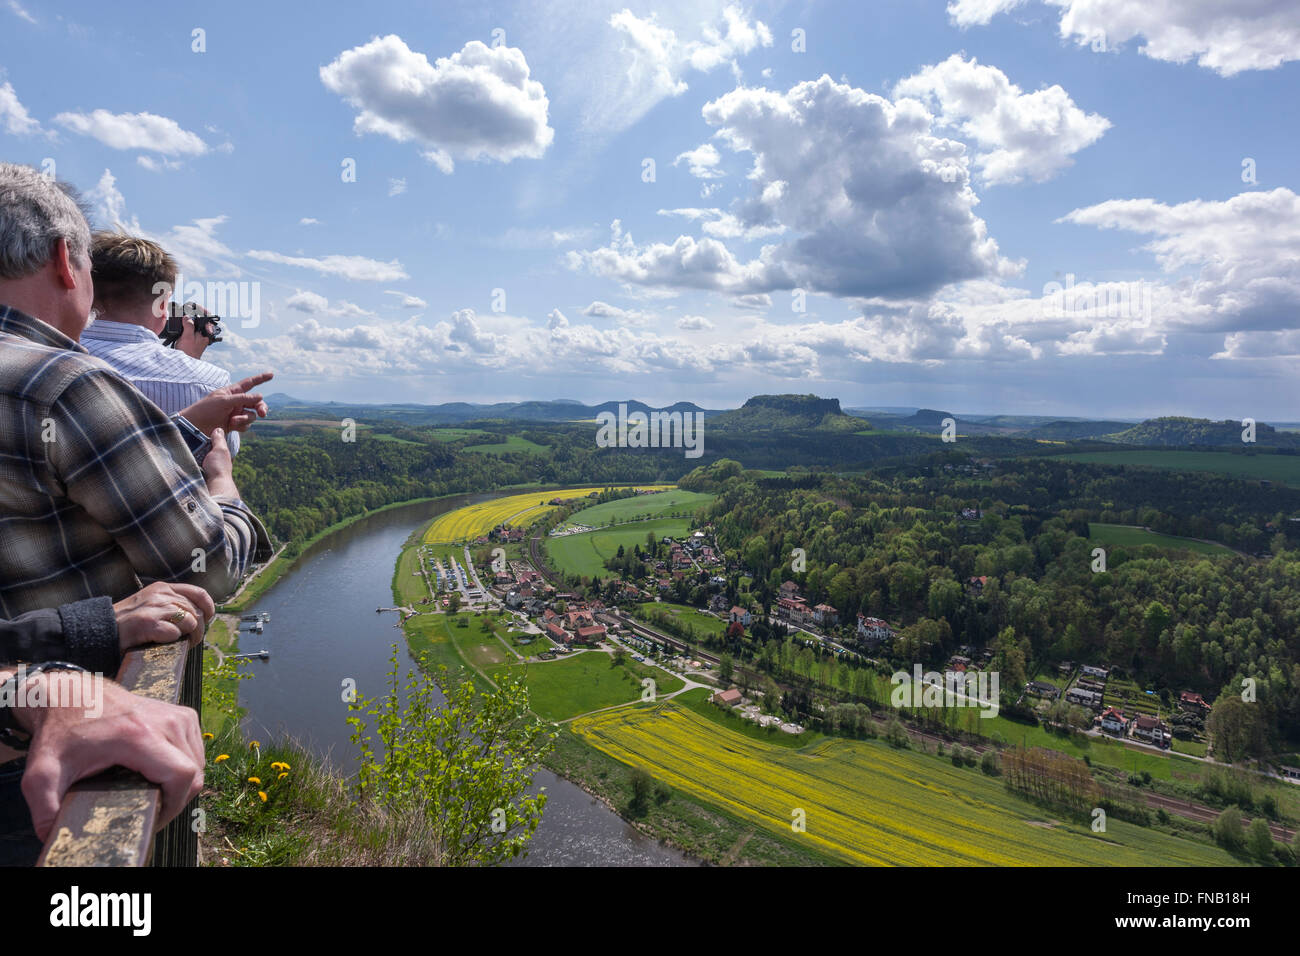 Tourists from the Bastei over the Elbe valley, Elbe Sandstone Mountains, Sächsische Schweiz, Saxony, Germany - Stock Image